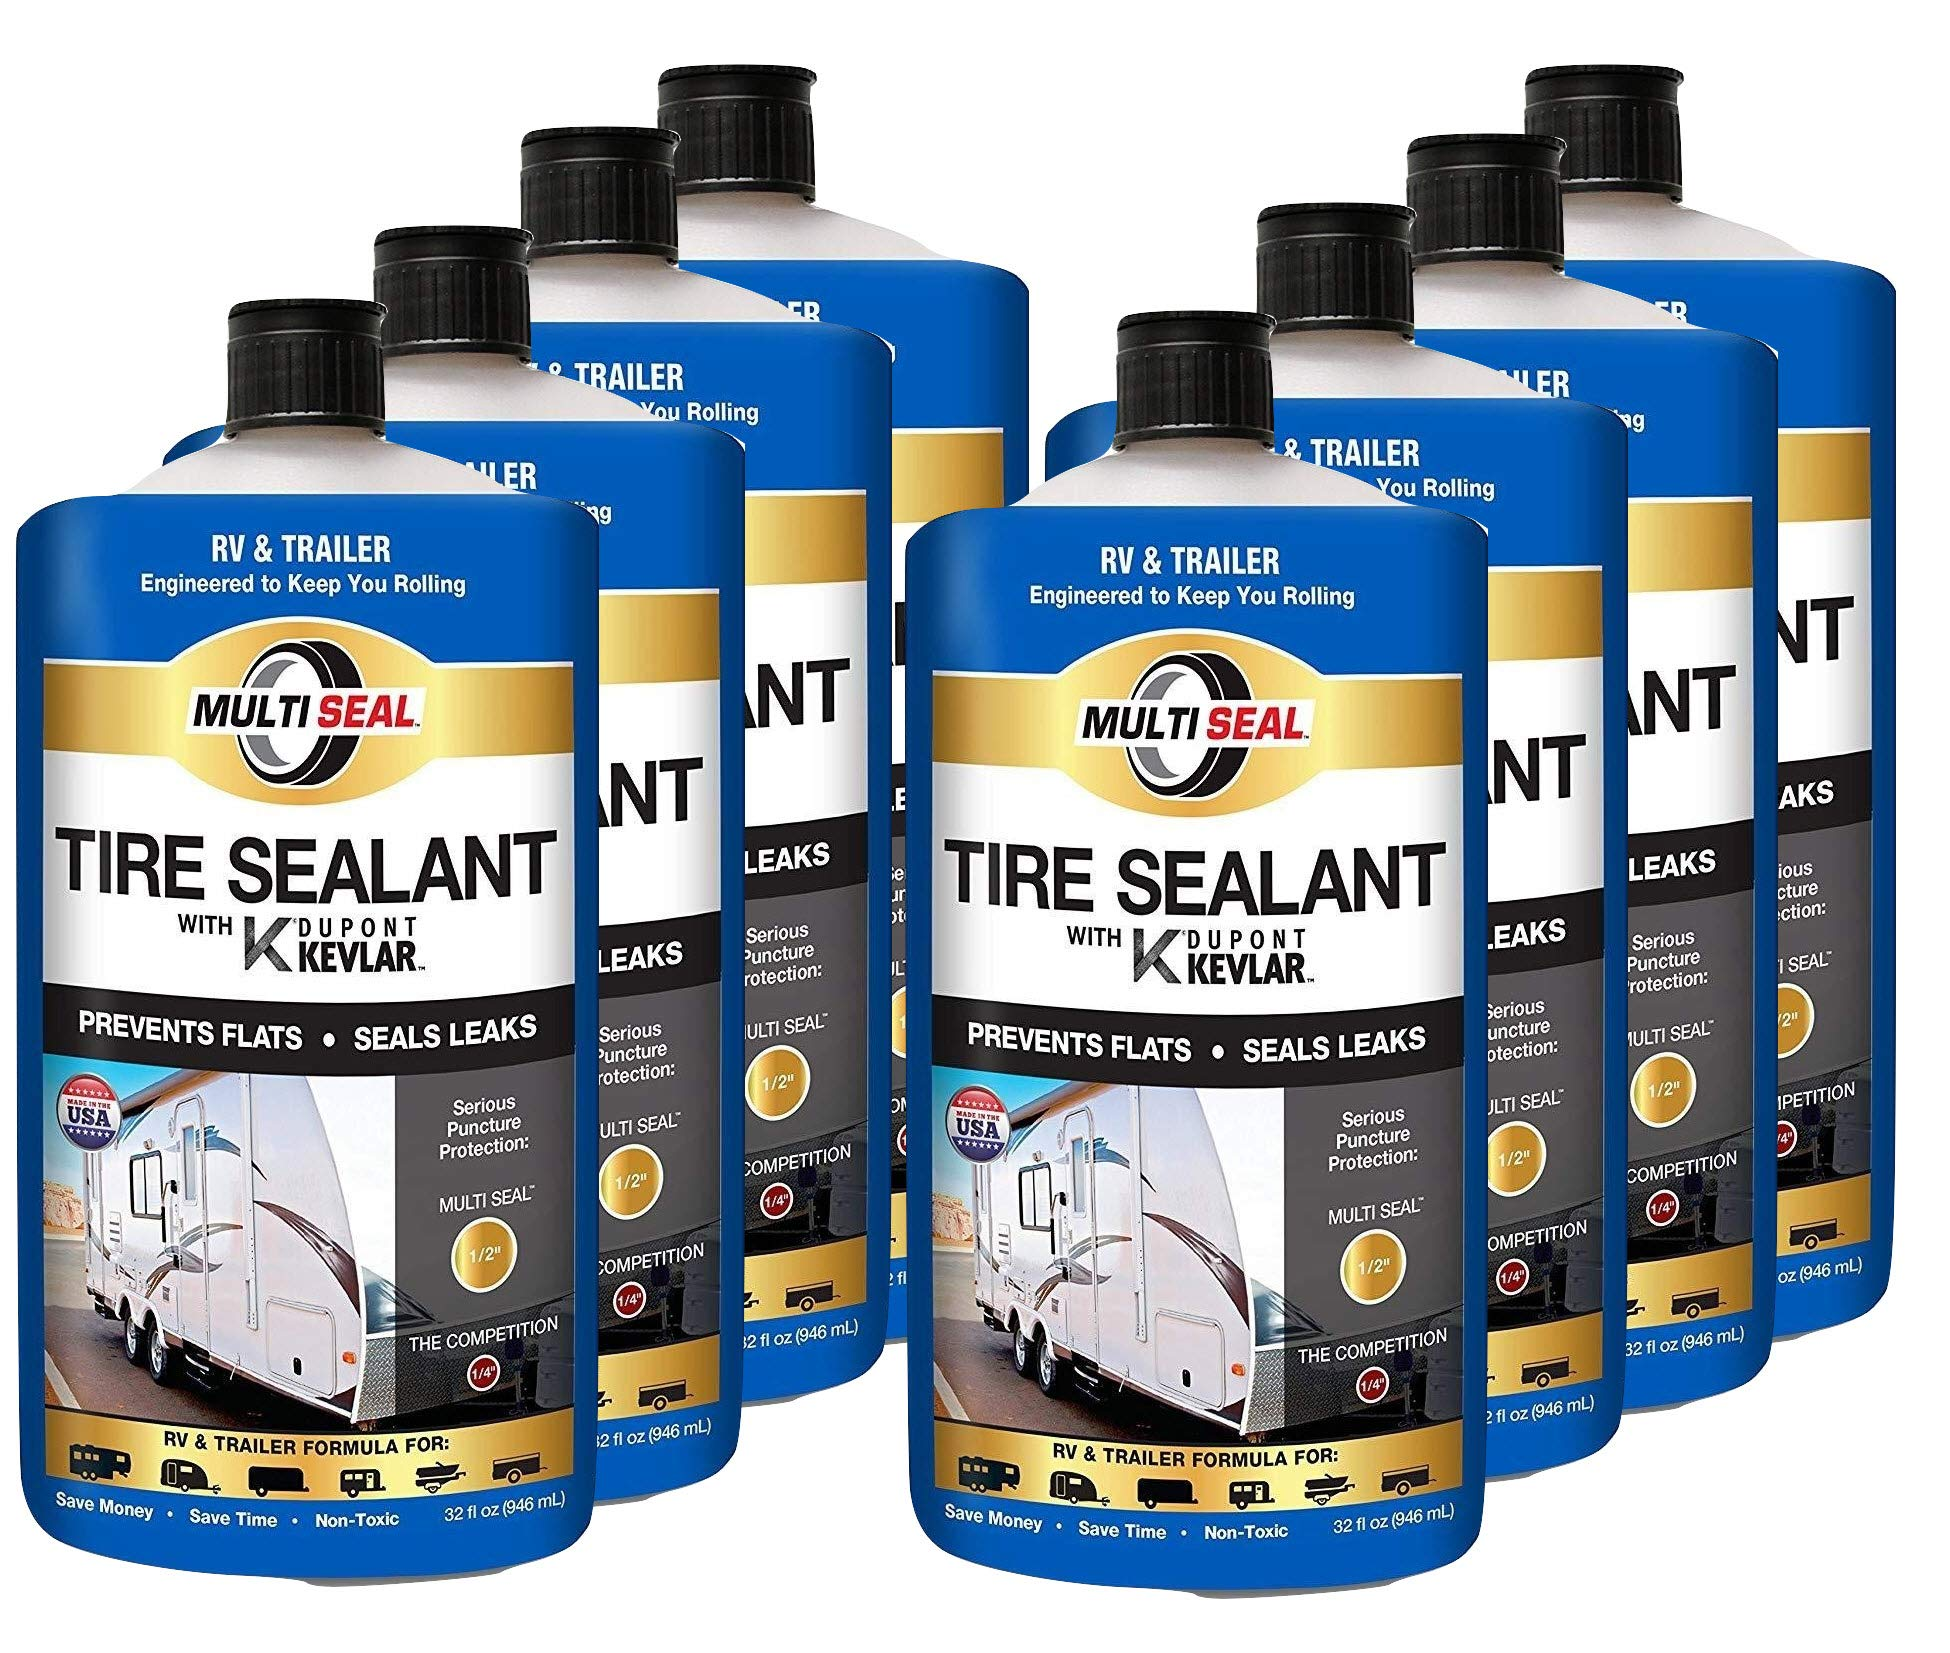 MULTI SEAL 20148 Tire Sealant with Kevlar (RV & Trailer Formula), Great for Travel Trailers, Boat Trailers, Horse Trailers, Toy Haulers, Cargo Trailers, Utility Trailers and more, 8-Pack (256 oz.) by MULTI SEAL (Image #1)